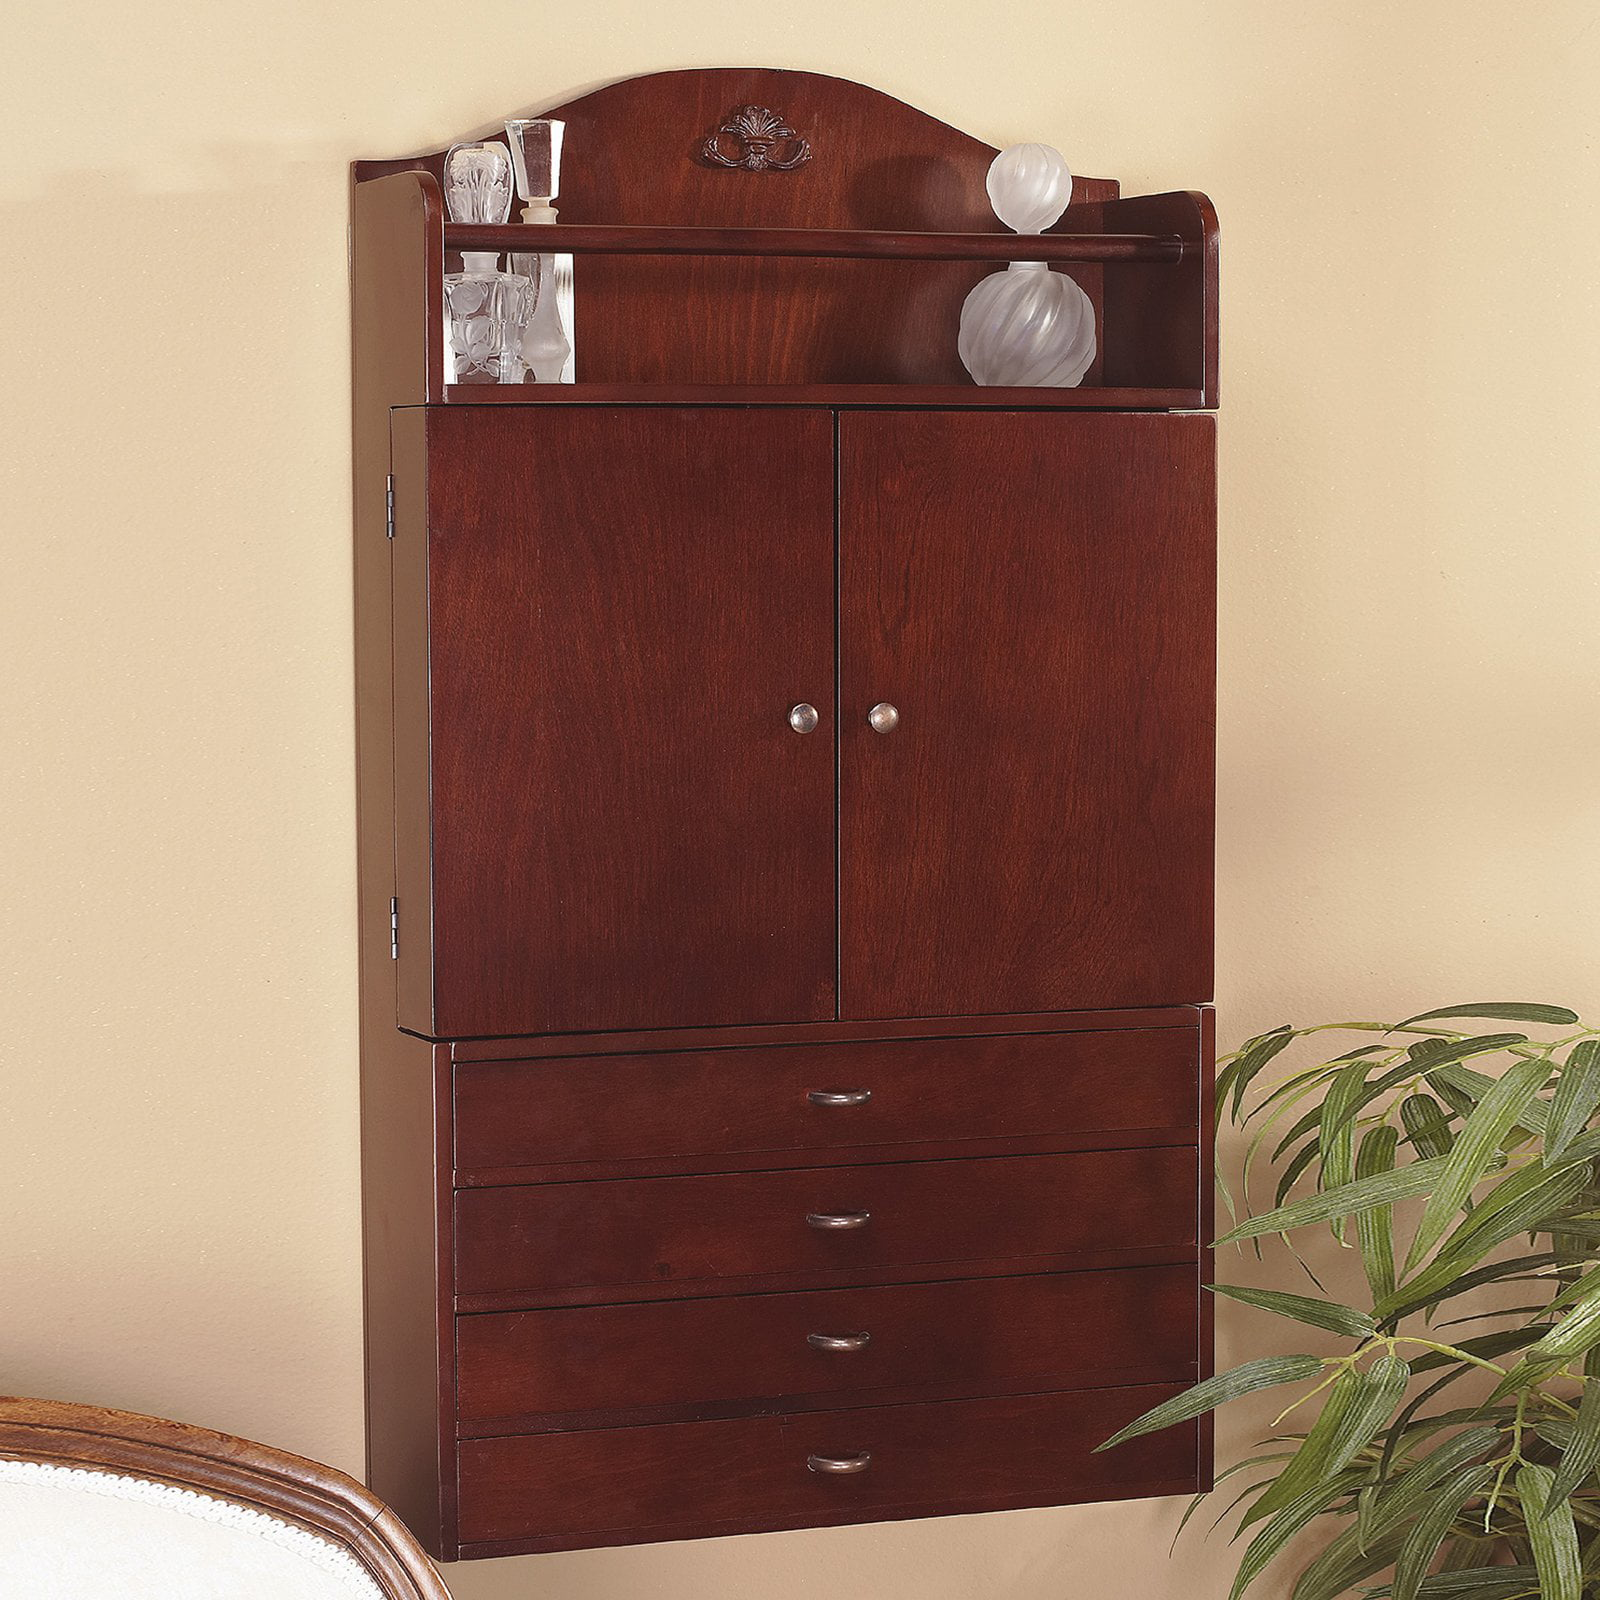 Wall-Mount Jewelry Armoire - Walmart.com